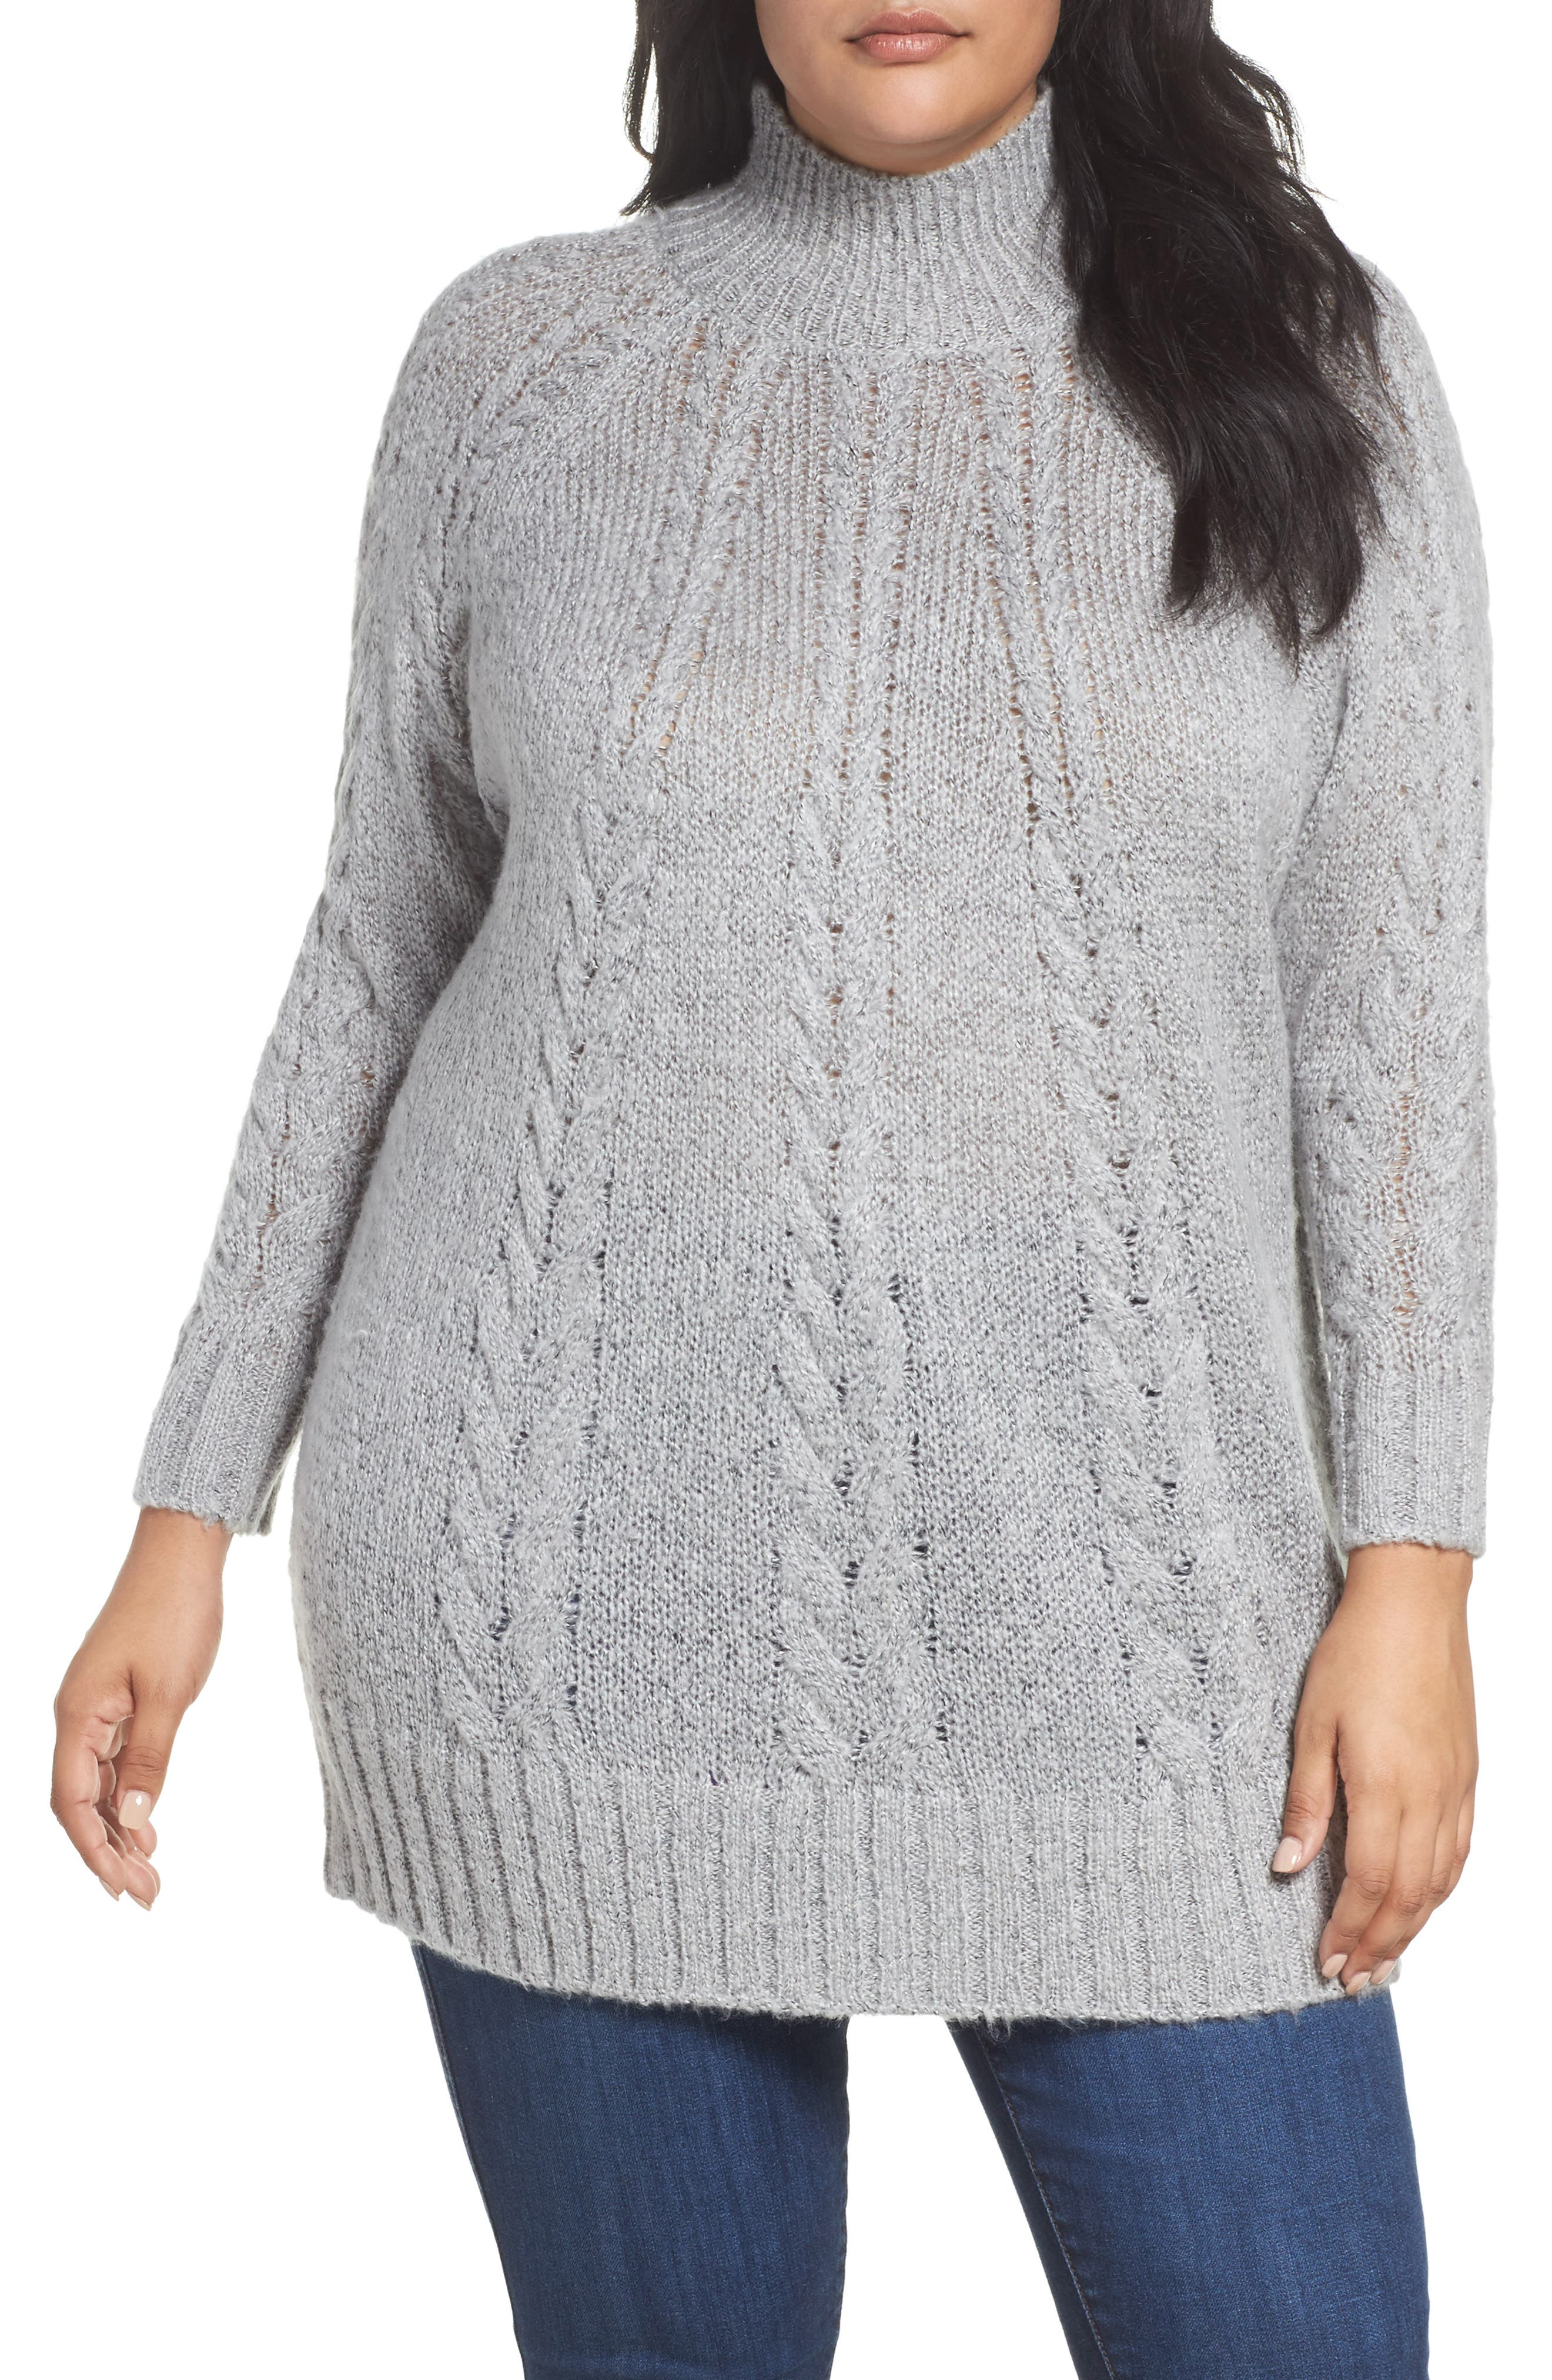 Cable Knit Tunic Sweater,                         Main,                         color, 030